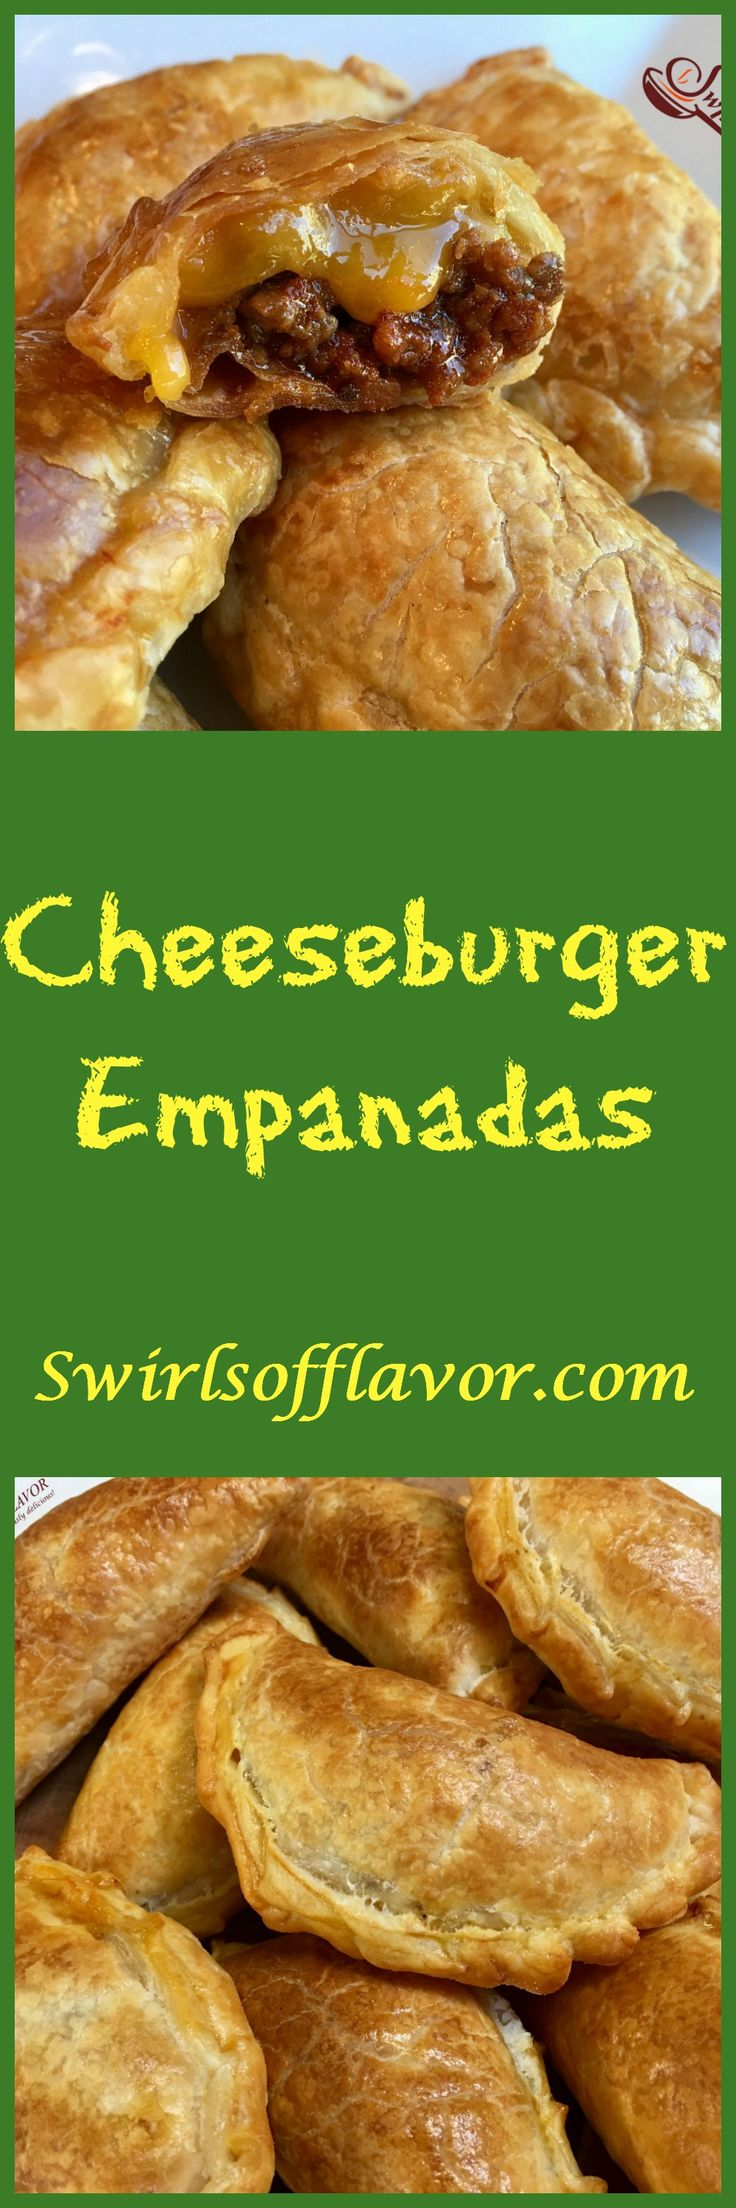 Cheeseburger Empanadas are bursting with a ground beef, ketchup and cheese filling, making them the perfect kid friendly snack!